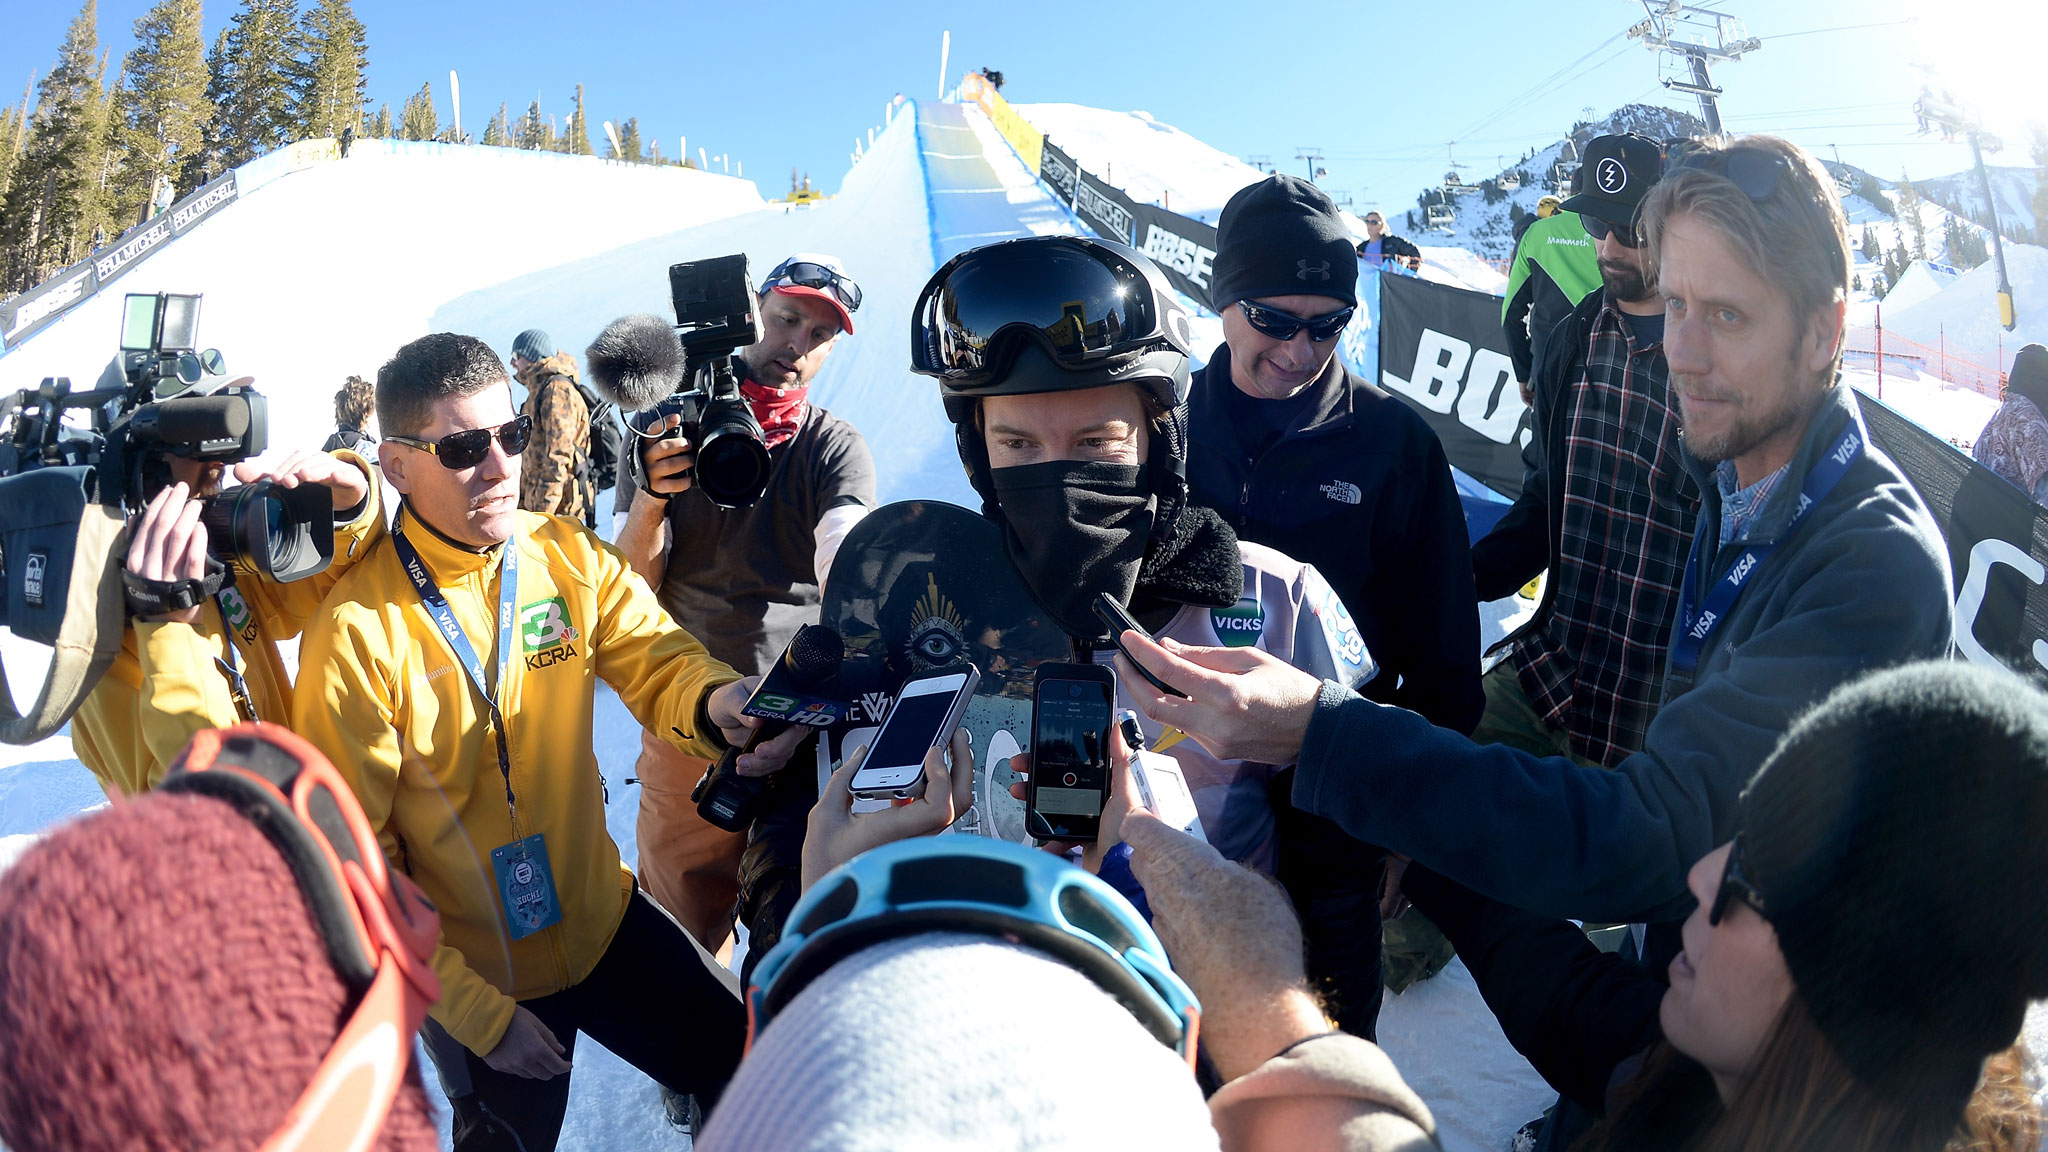 Shaun White talks to media after his win in the fourth U.S. Olympic qualifier at Mammoth. Of five pipe qualifiers this season, White won two, finished second to Greg Bretz in one and did not compete in two.